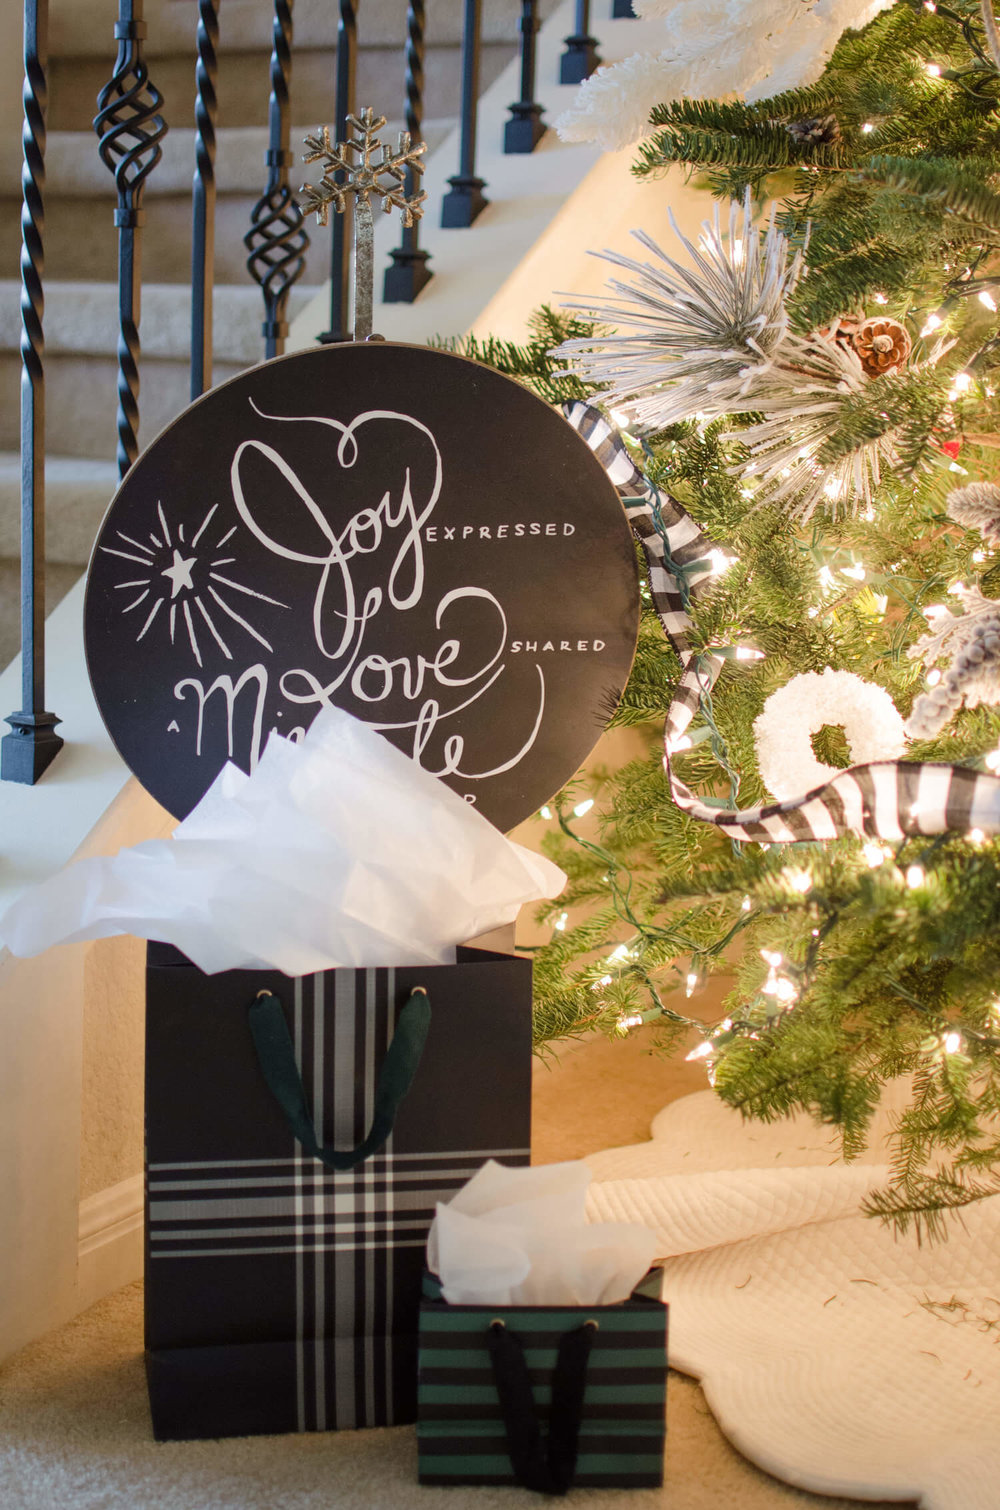 Christmas Tree decor with black and white accents